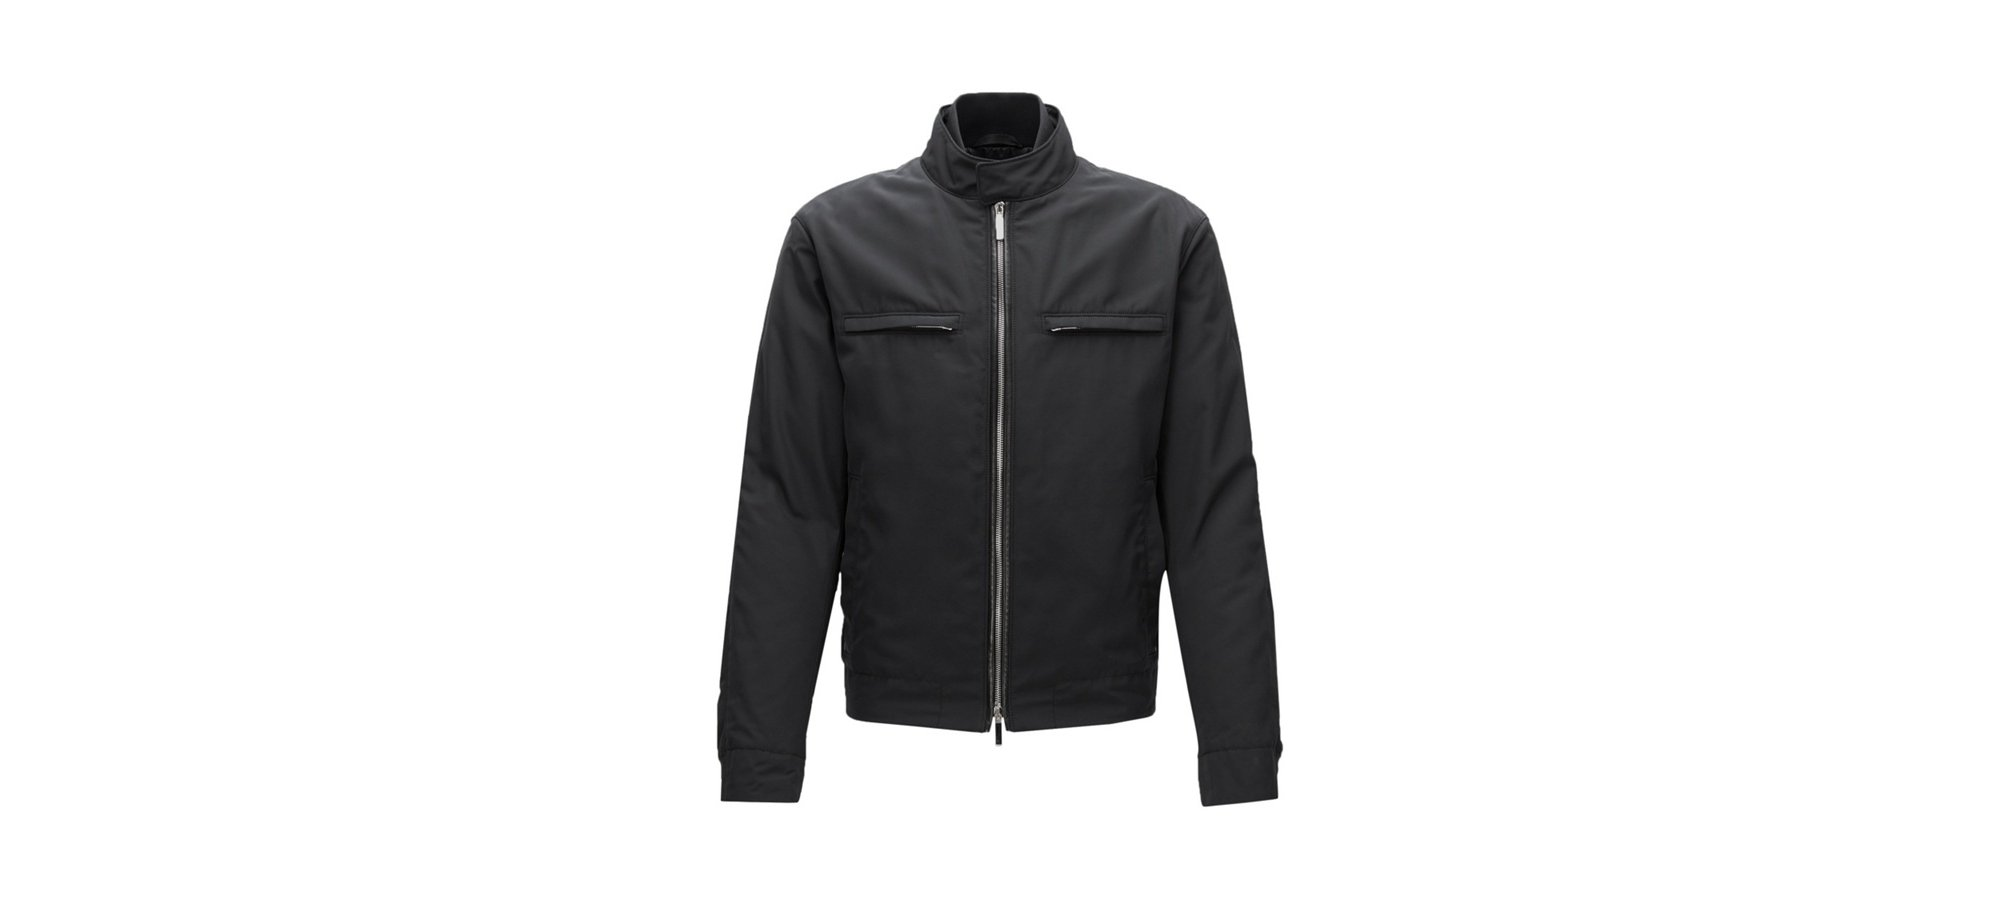 Mercedes-Benz Nylon Moto Jacket | Chead, Black